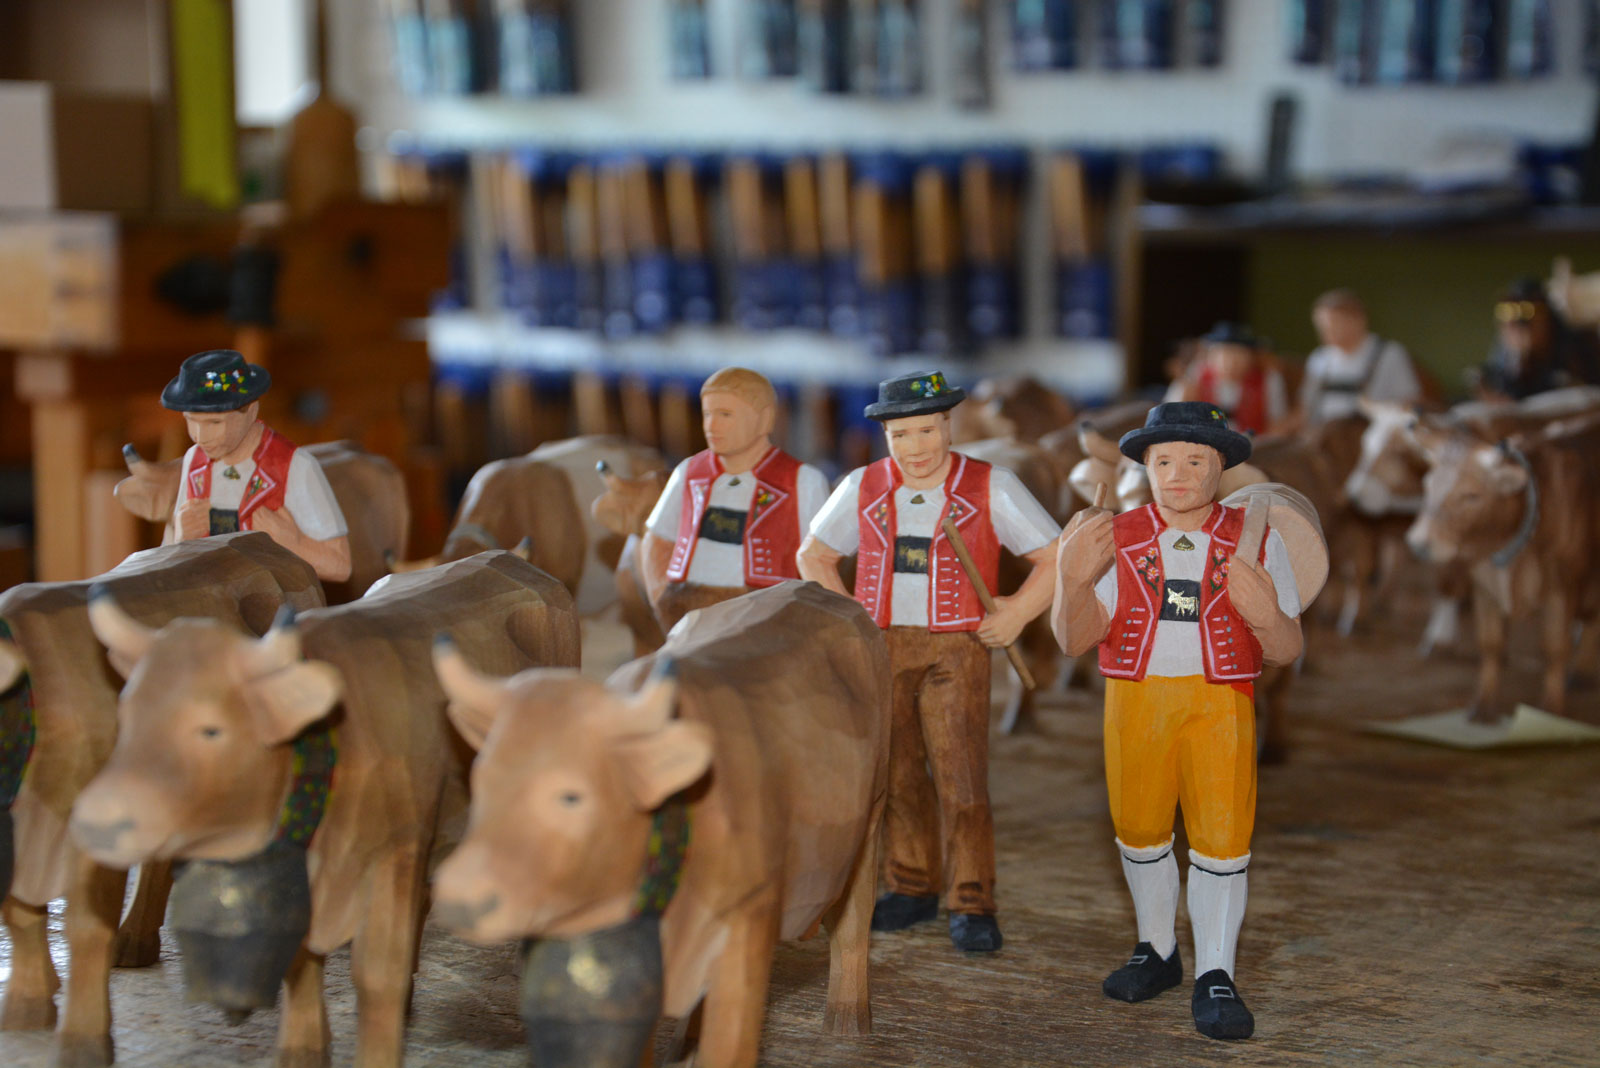 Swiss cows and traditional costumes carved from wood